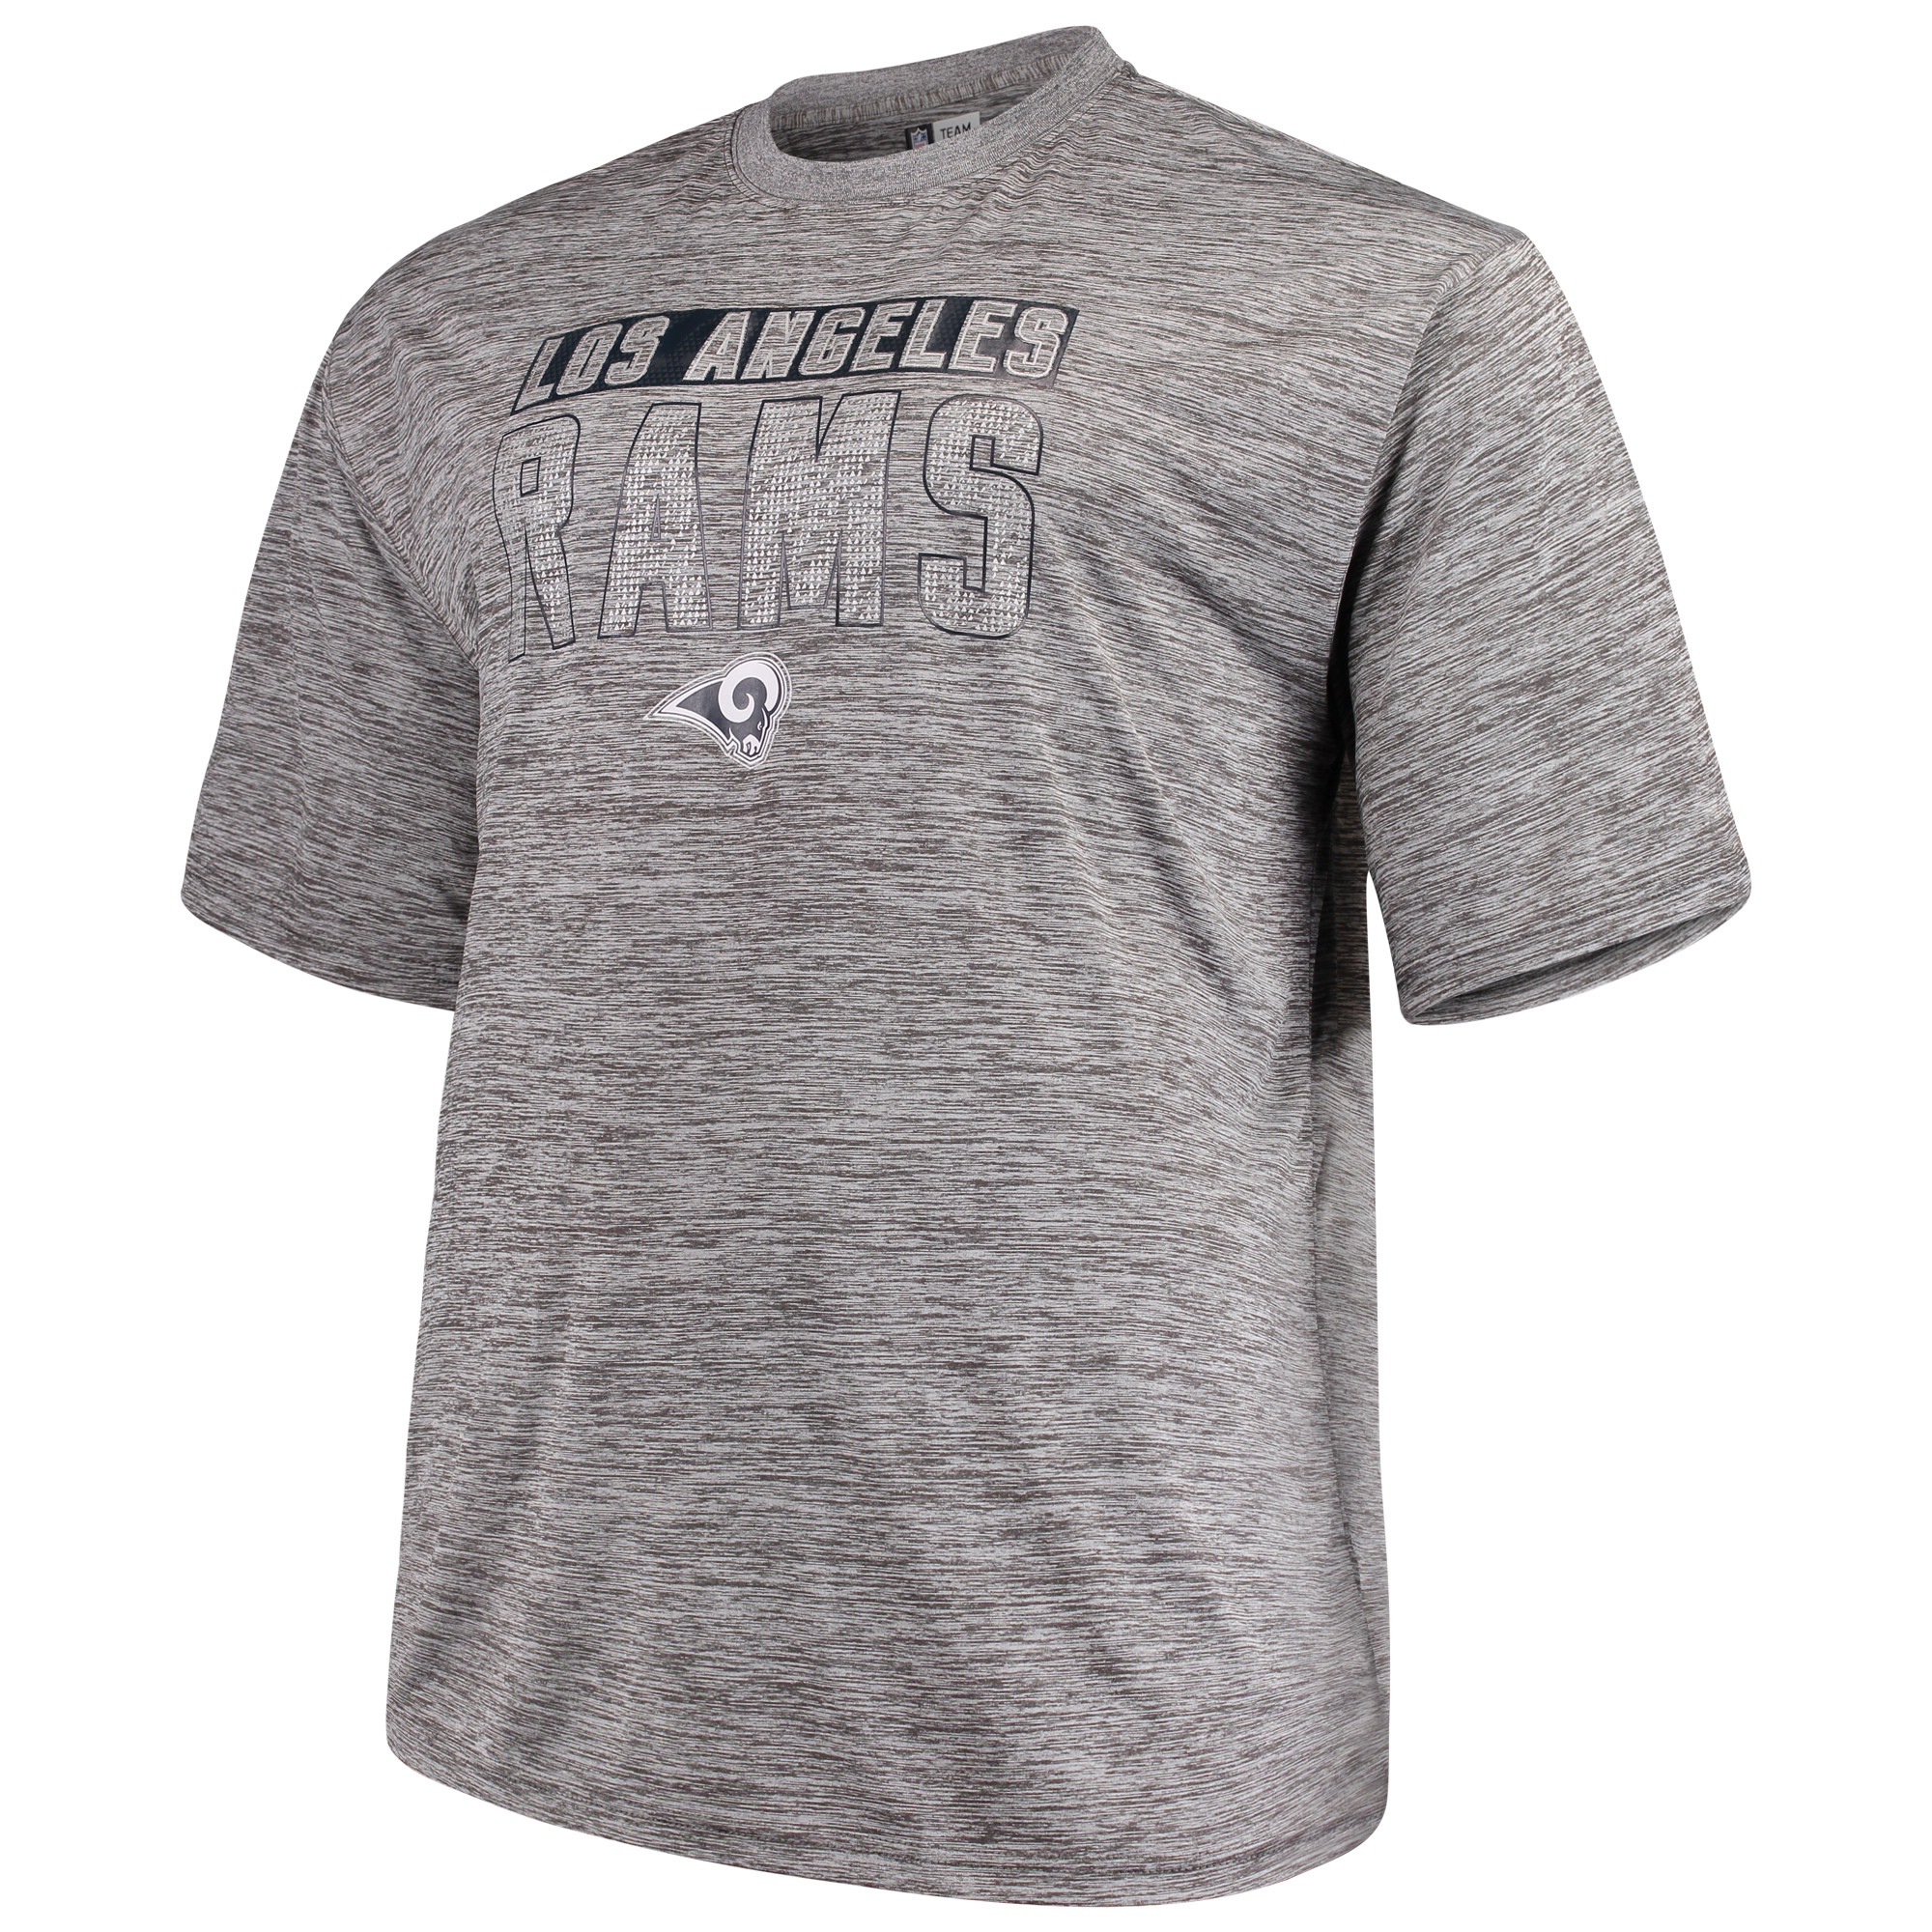 Men's Majestic Heathered Gray Los Angeles Rams Big & Tall Last Chance Ply Reflective T-Shirt